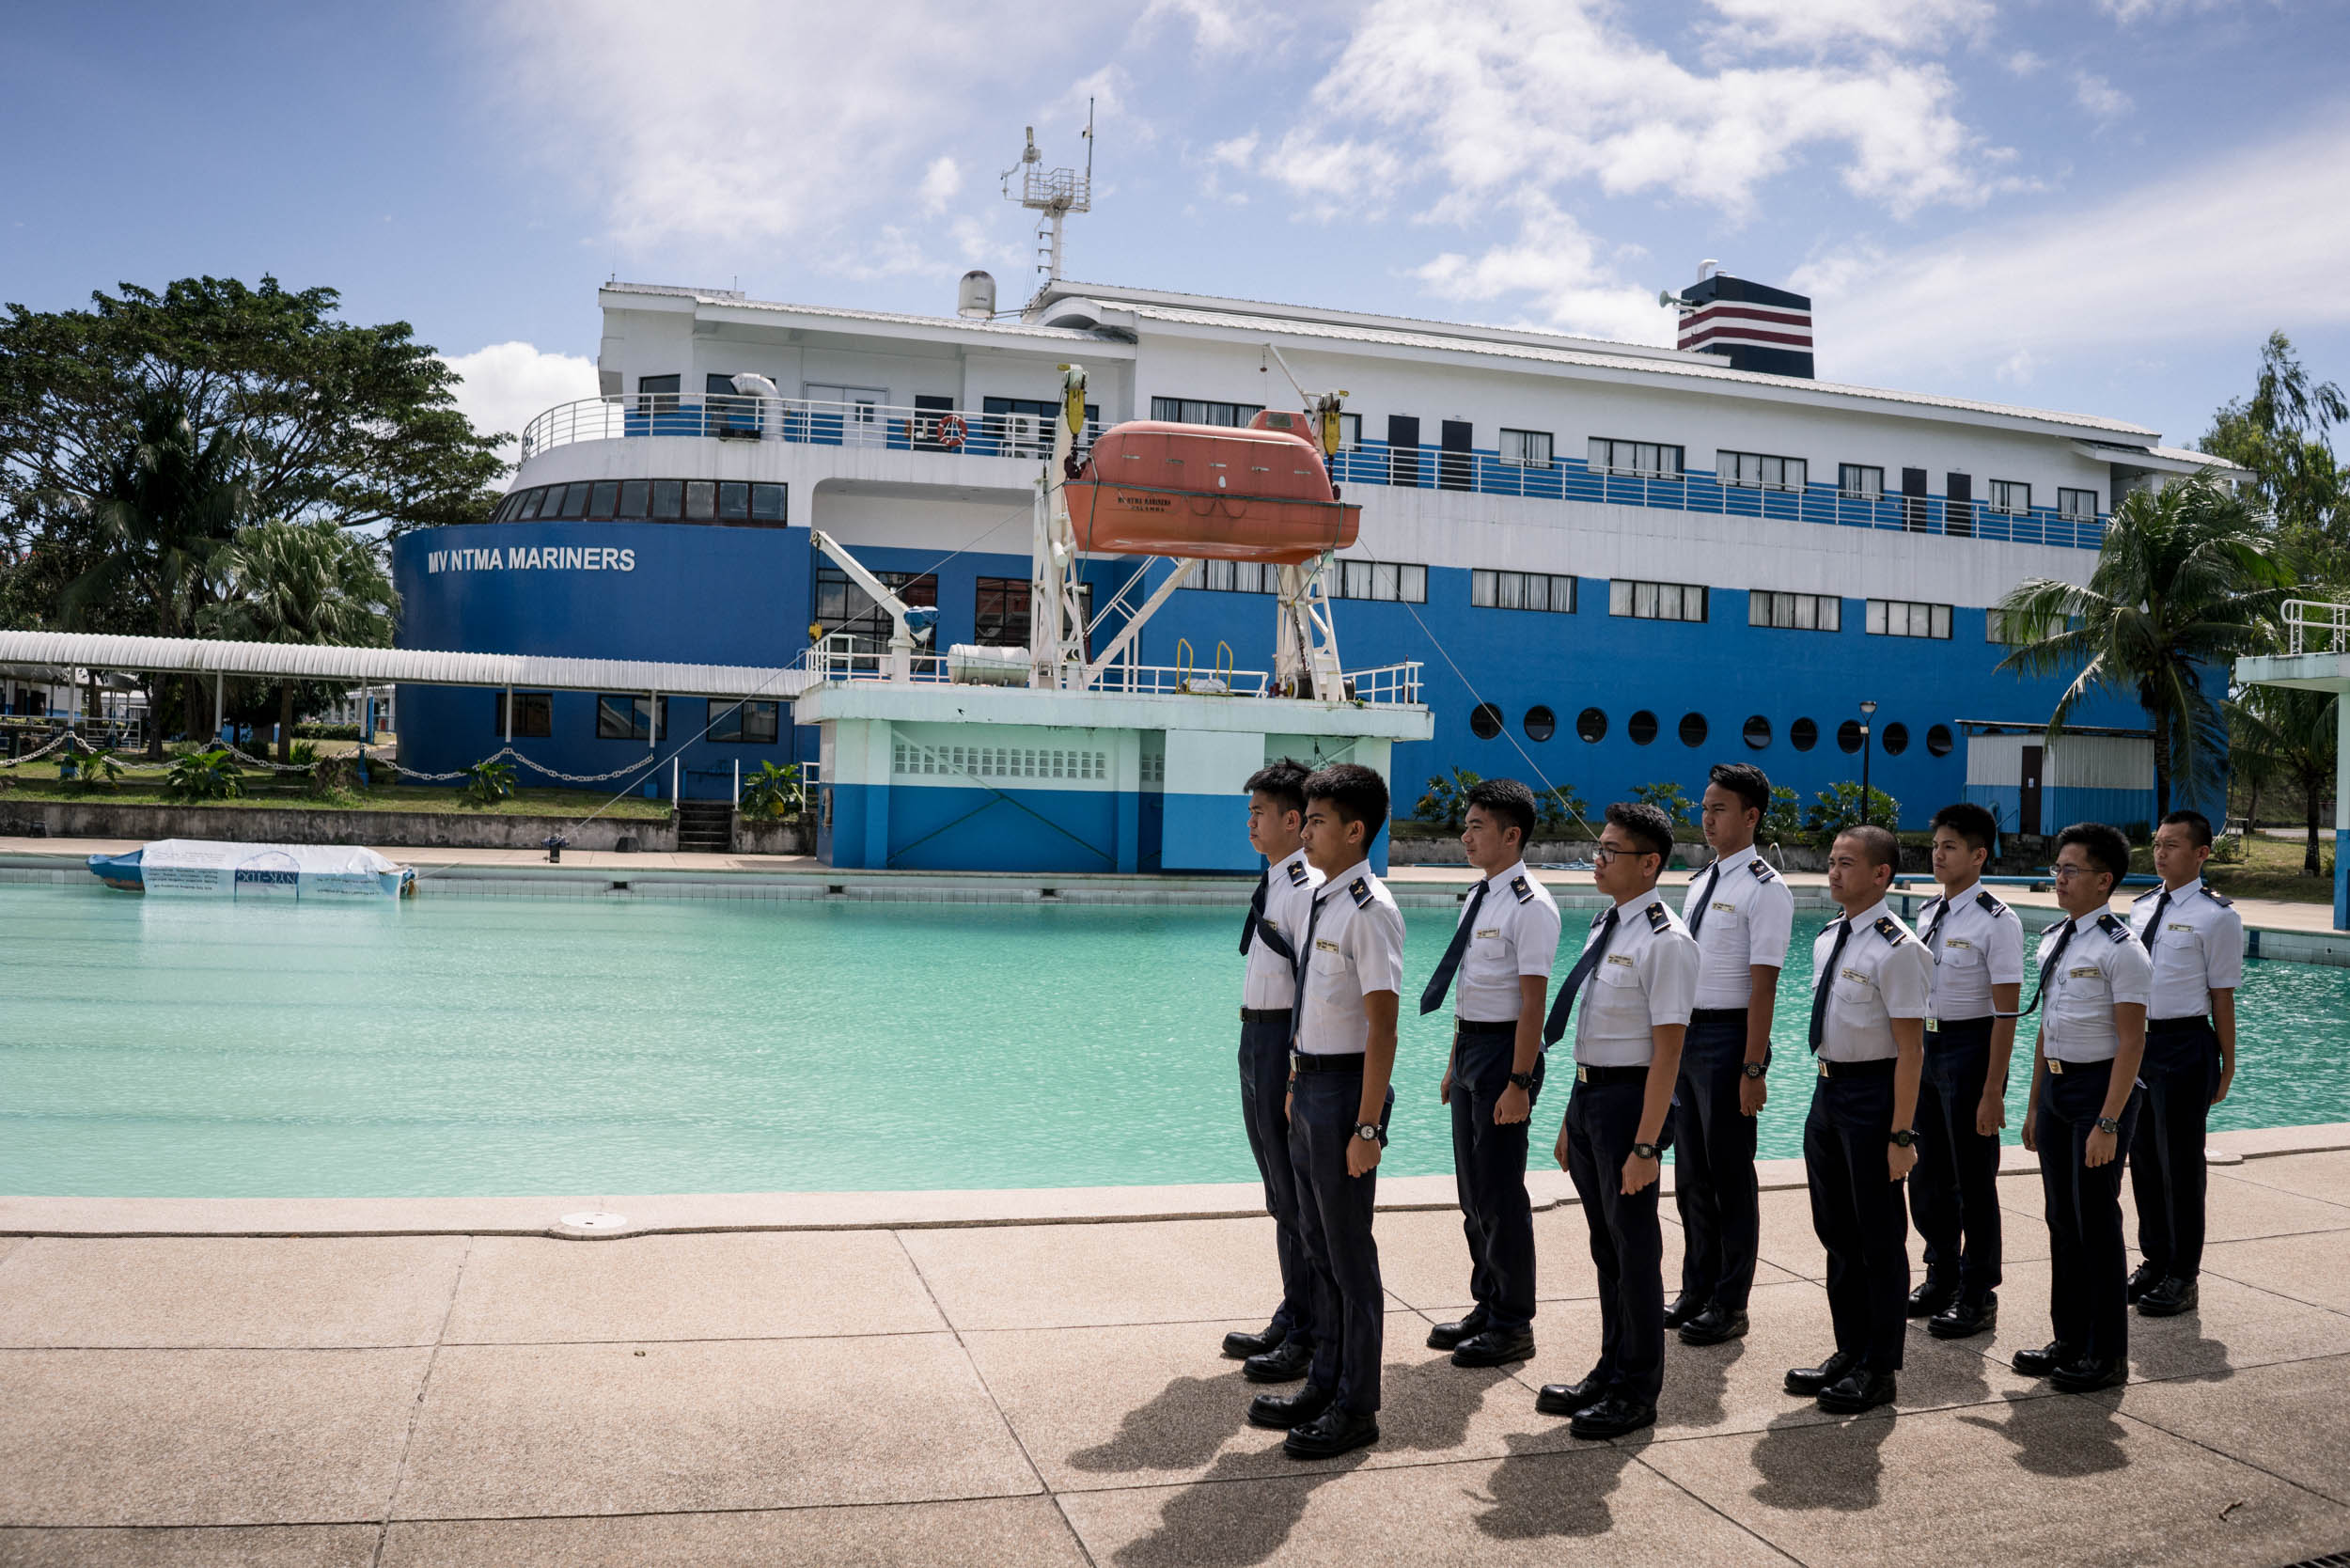 Aspiring seafarers are seen in a maritime academy south of Manila, Philippines. After their education, the school helps place the students, majority of who will work for the school's partner Japanese shipping lines. They can opt to pay for their education (which costs higher than what the average Filipino can afford) later on when they work for the partner shipping line.